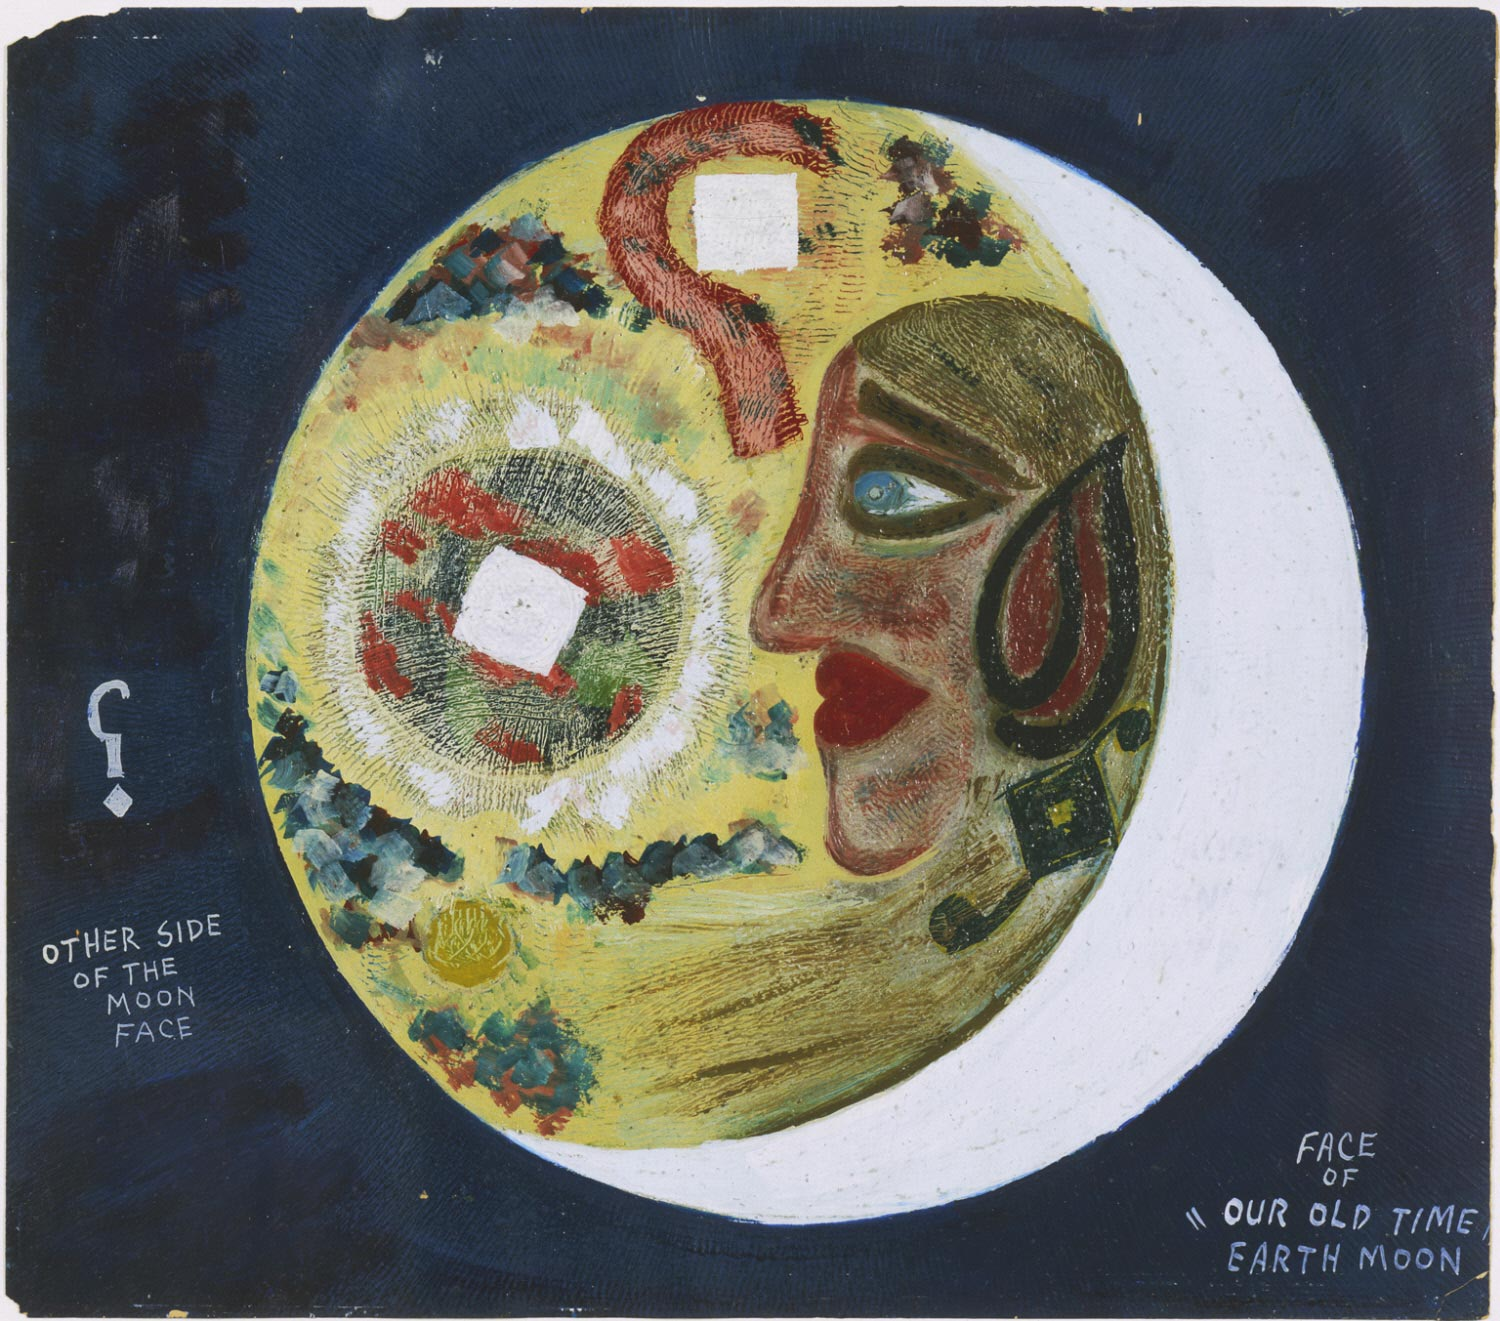 Face of Our Old Time Earth Moon